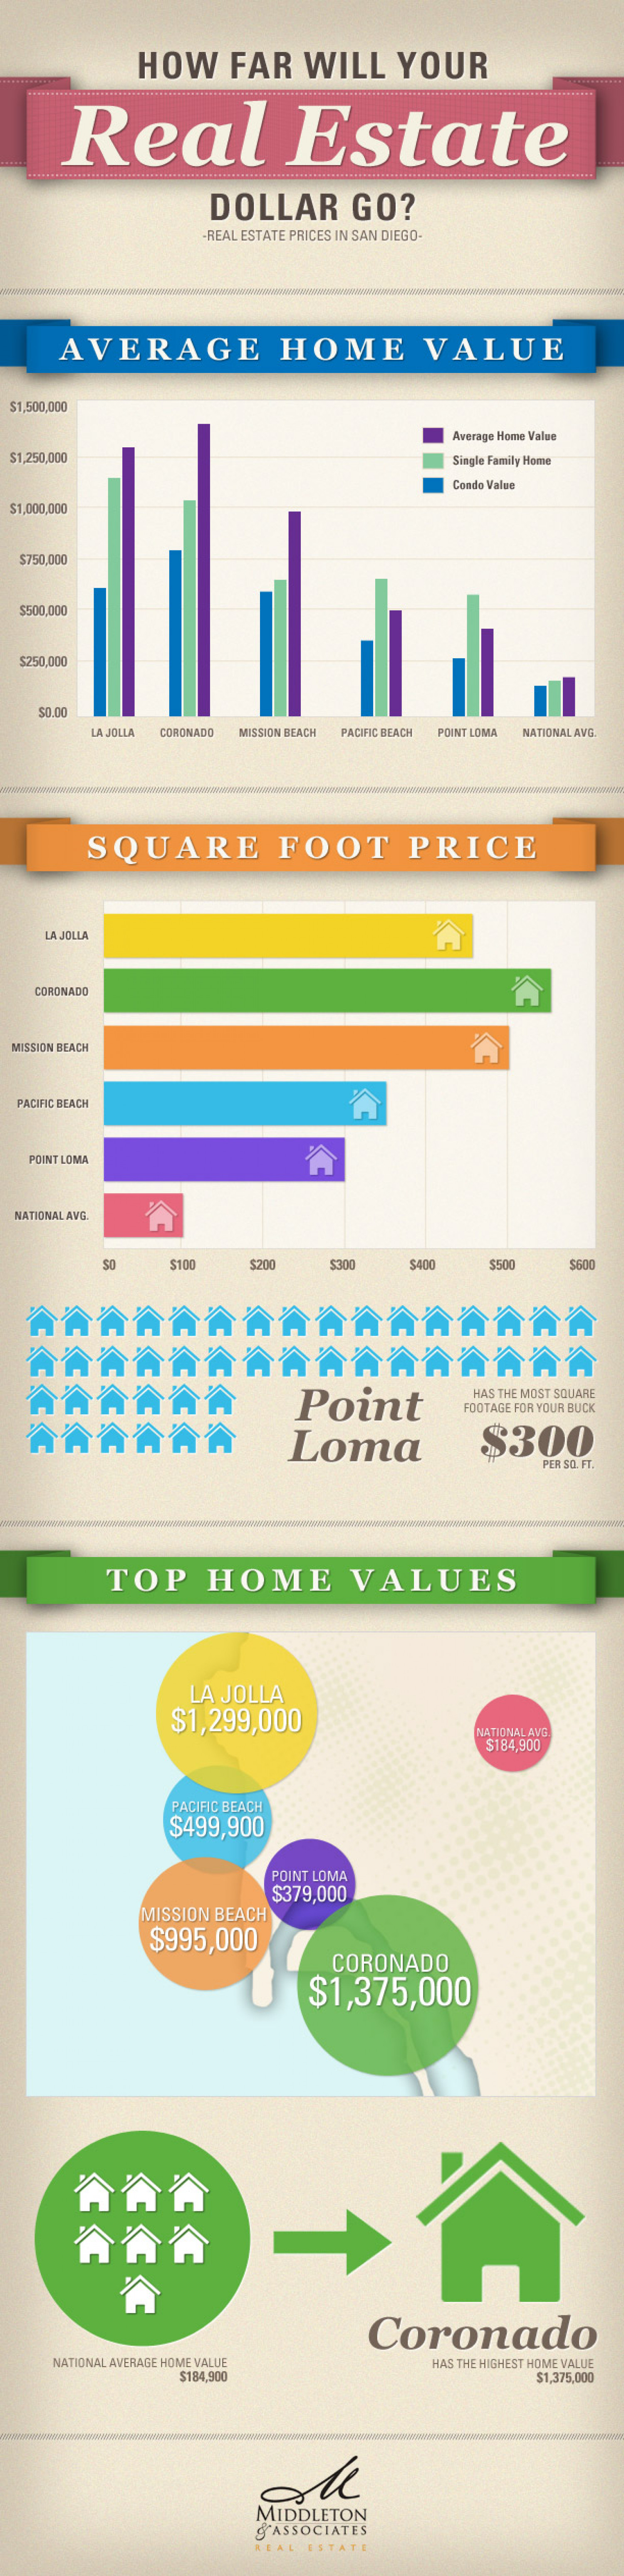 How Far Will Your Real Estate Dollar Go? Infographic